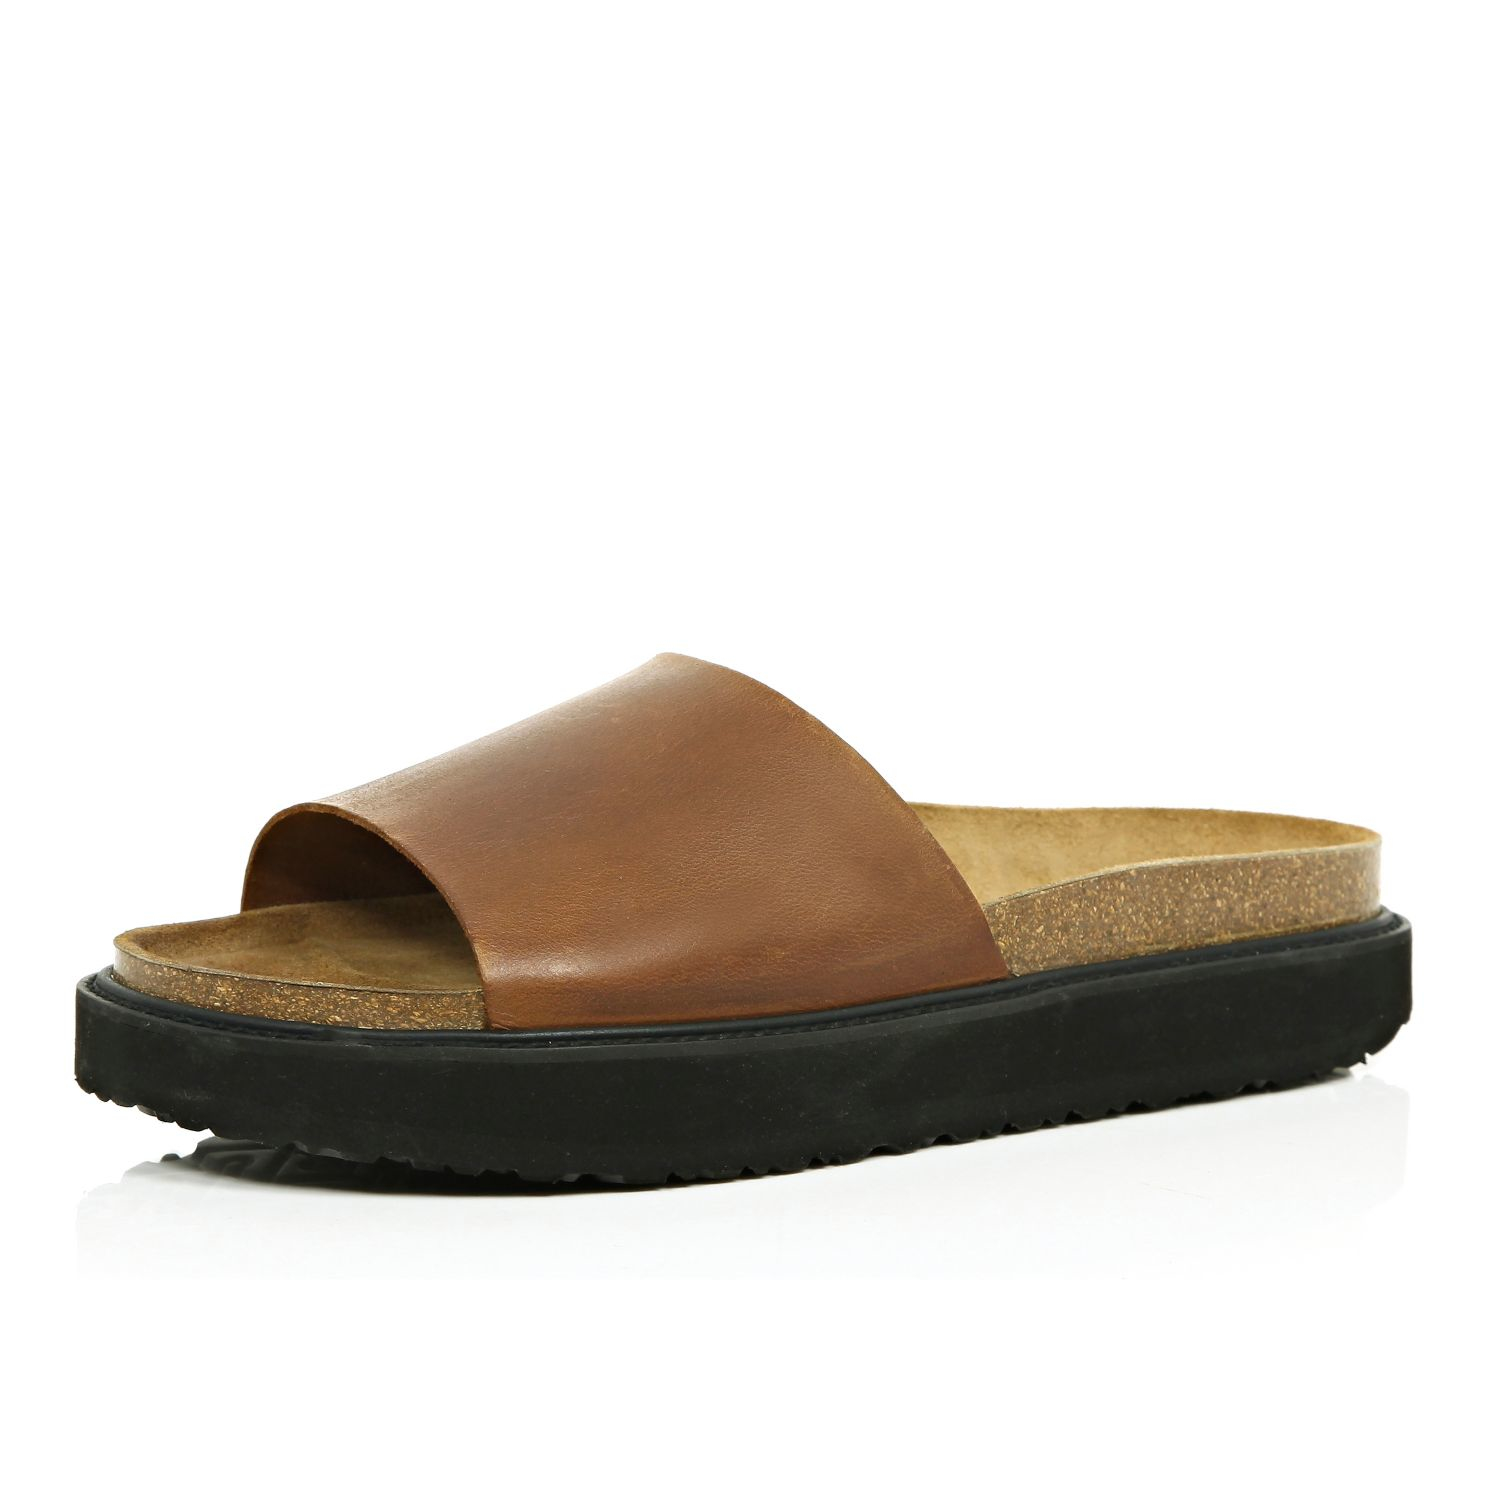 de9851fa8696 Lyst - River Island Brown Leather Chunky Slide Sandals in Brown for Men